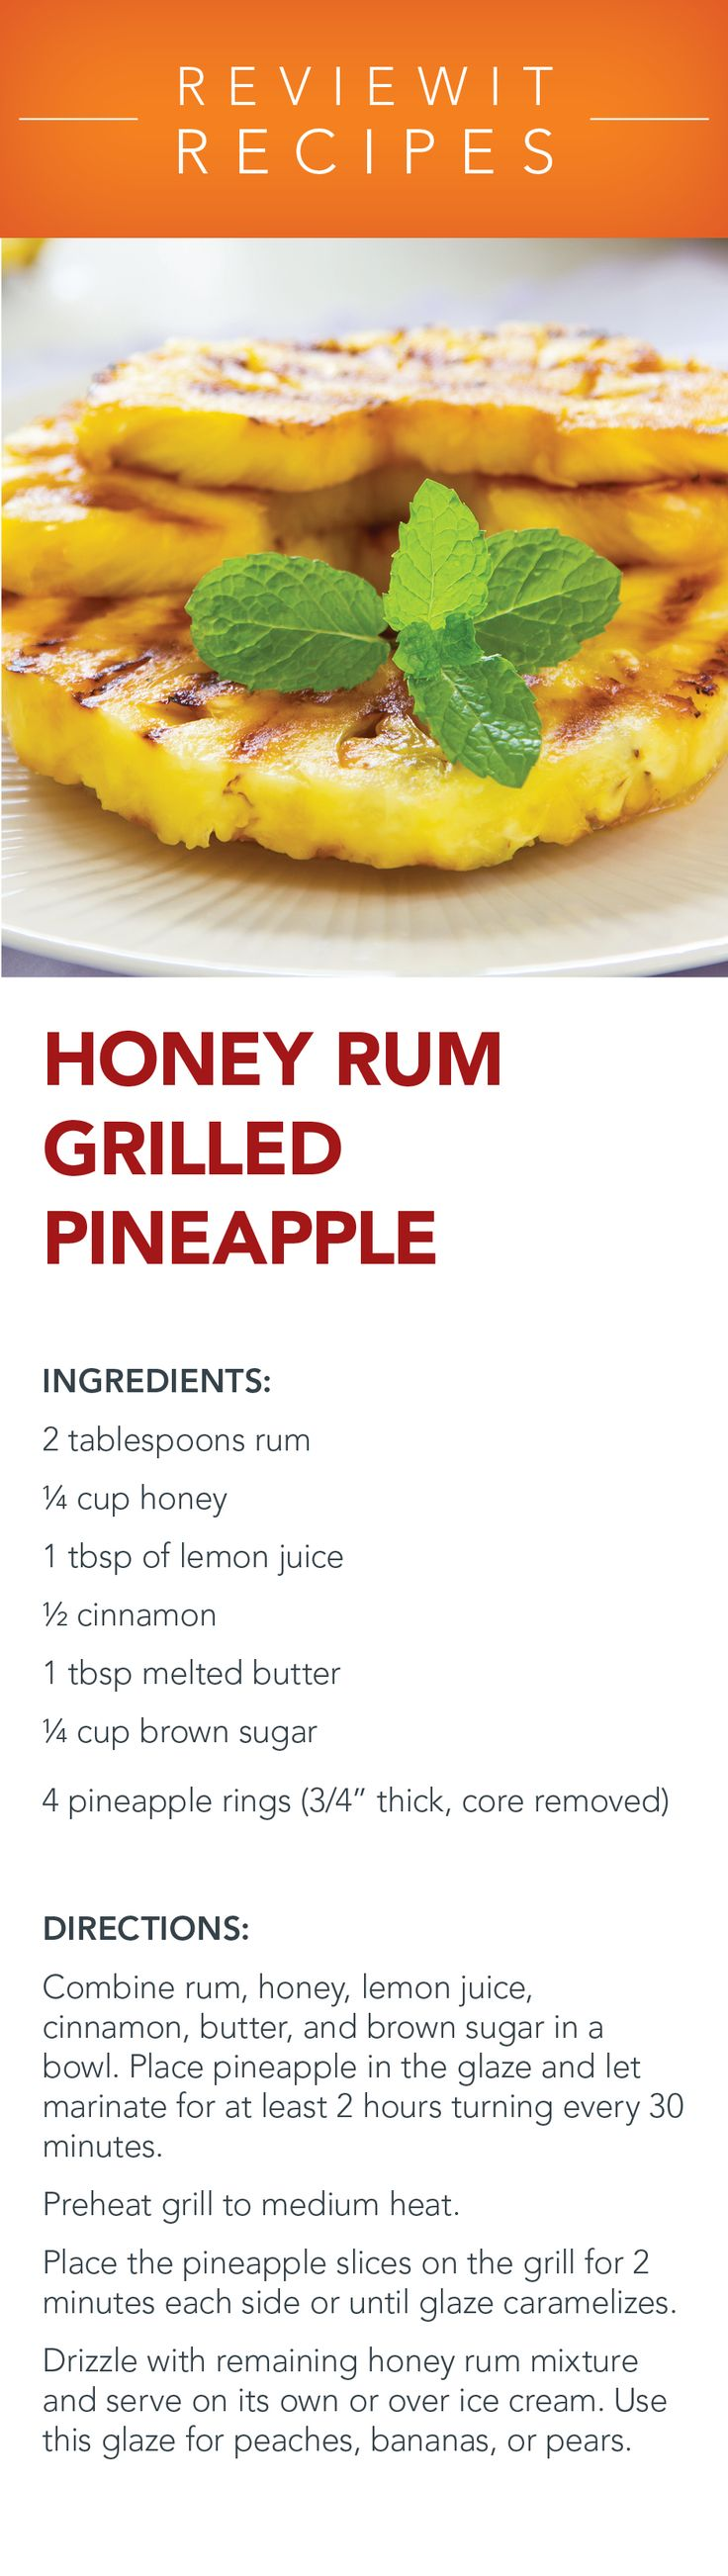 Dessert Grill Recipes - Honey Rum Grilled Pineapple